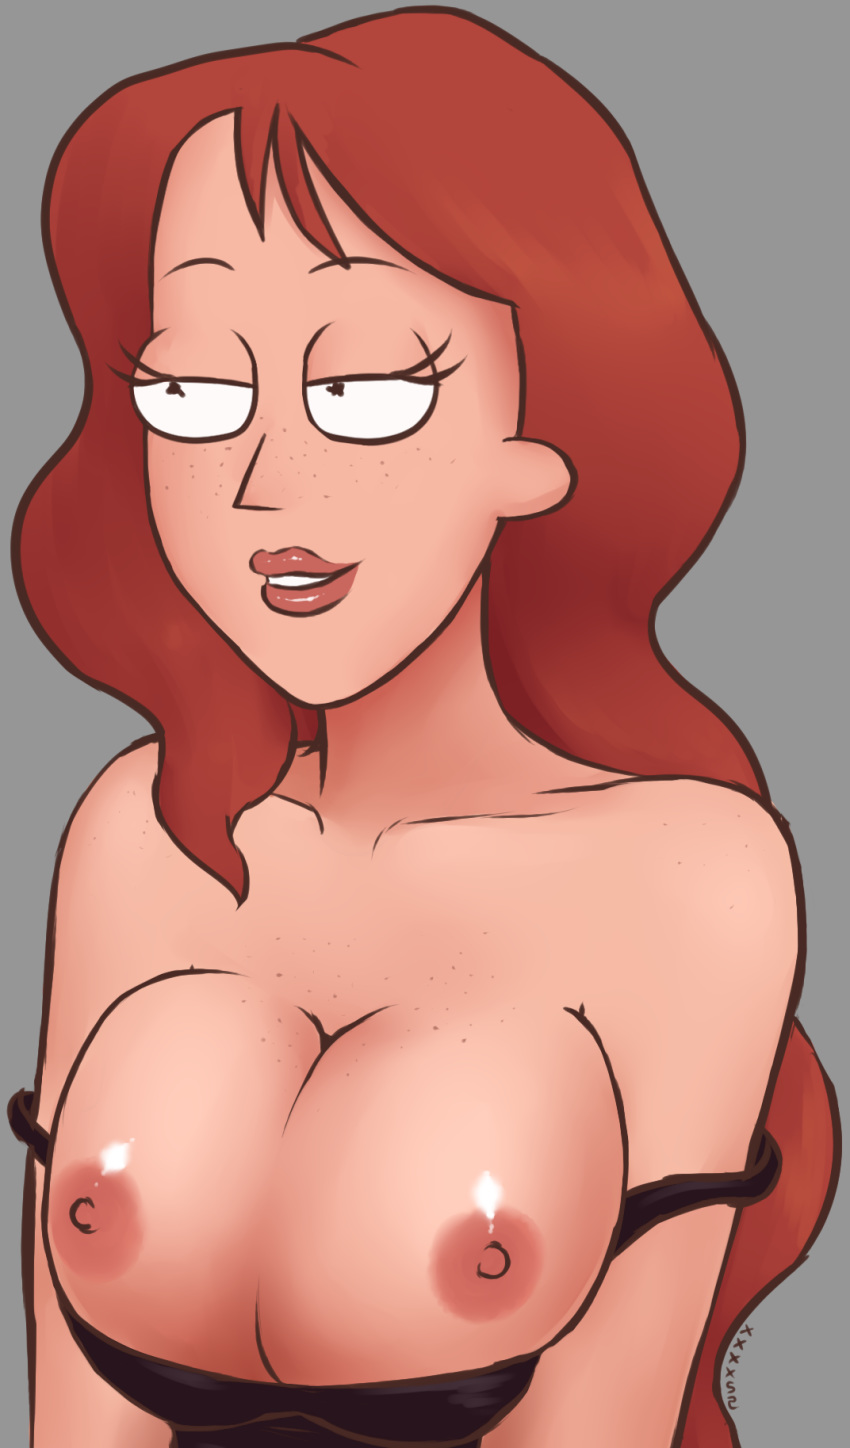 and summer smith morty nude rick Cleveland show big boob june